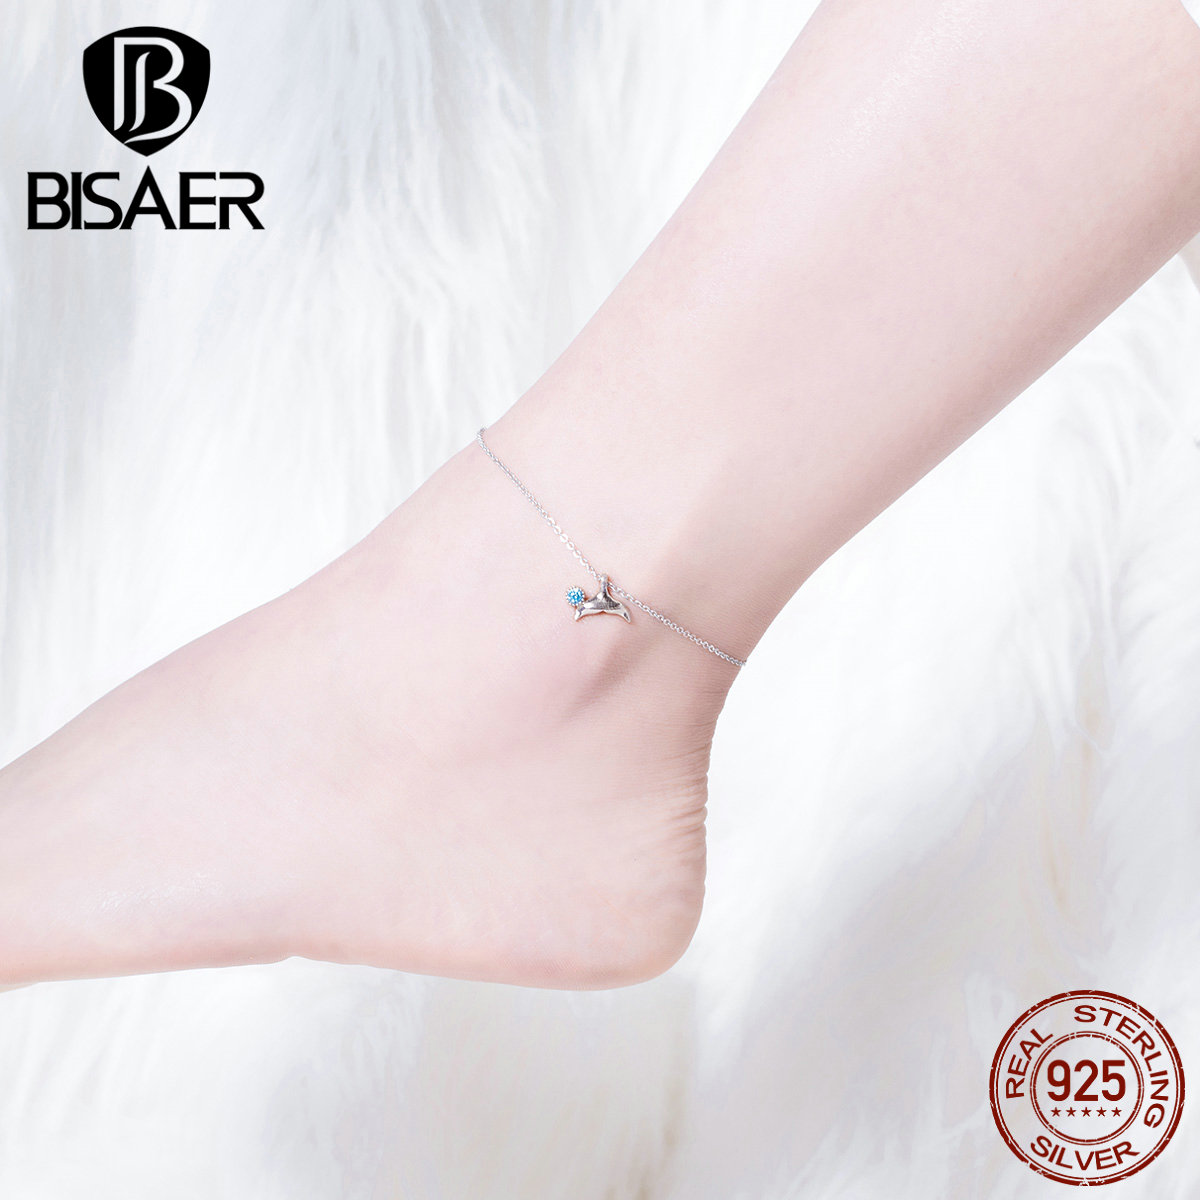 BISAER Mermaid Anklets 925 Sterling Silver Mermaid's Story Chain Silver Anklets for Women Sterling Silver Jewelry ECT004 5